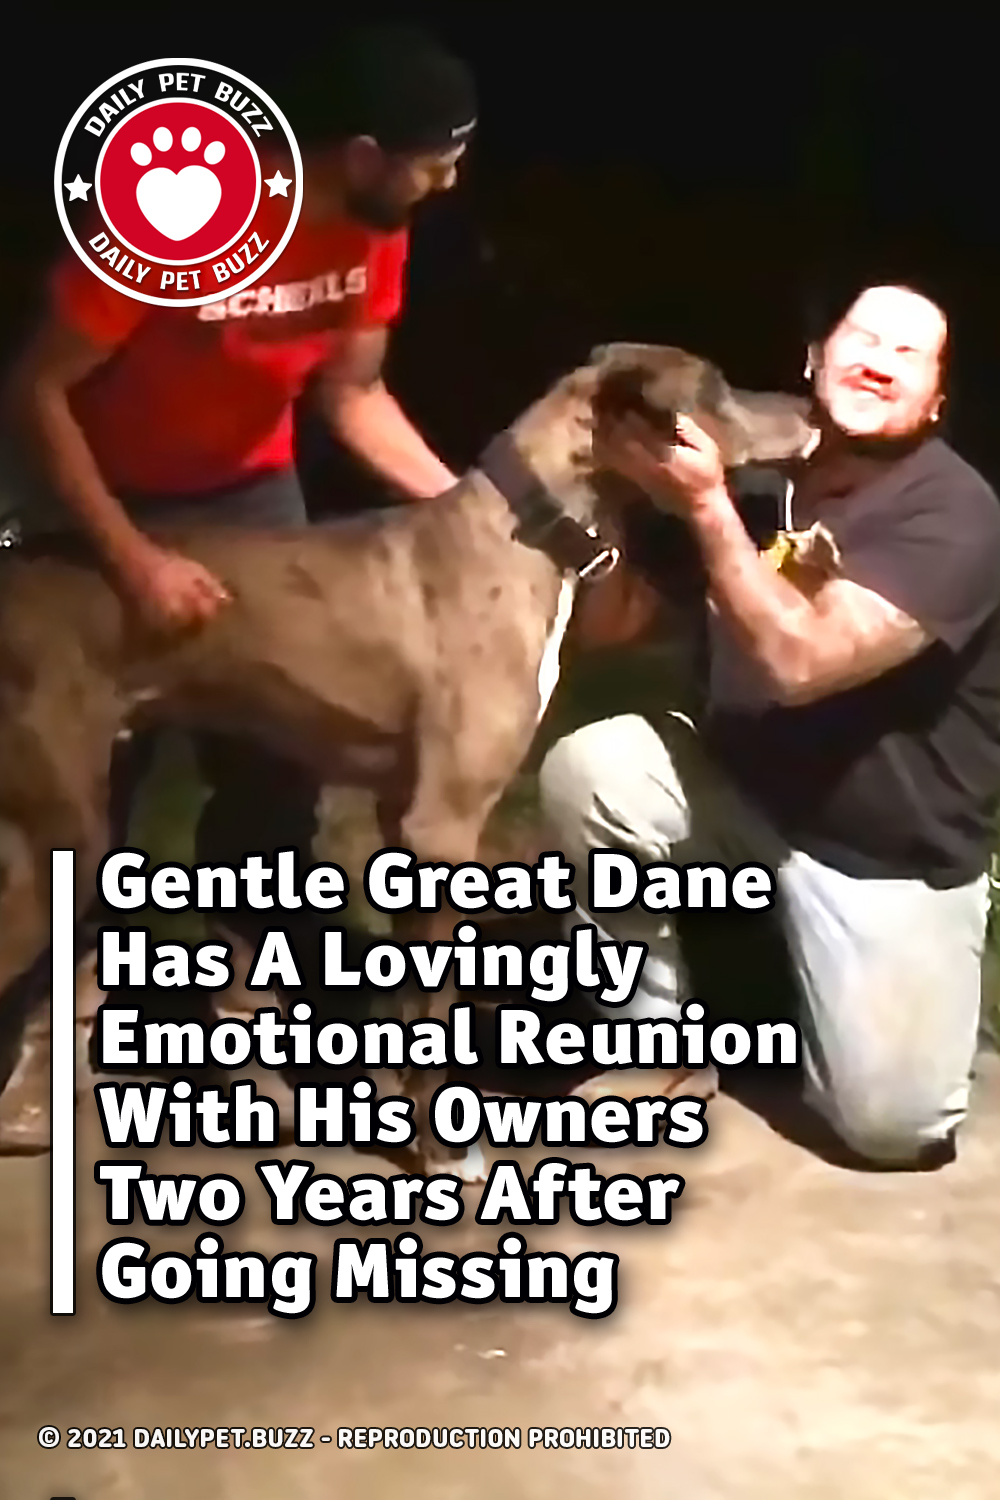 Gentle Great Dane Has A Lovingly Emotional Reunion With His Owners Two Years After Going Missing